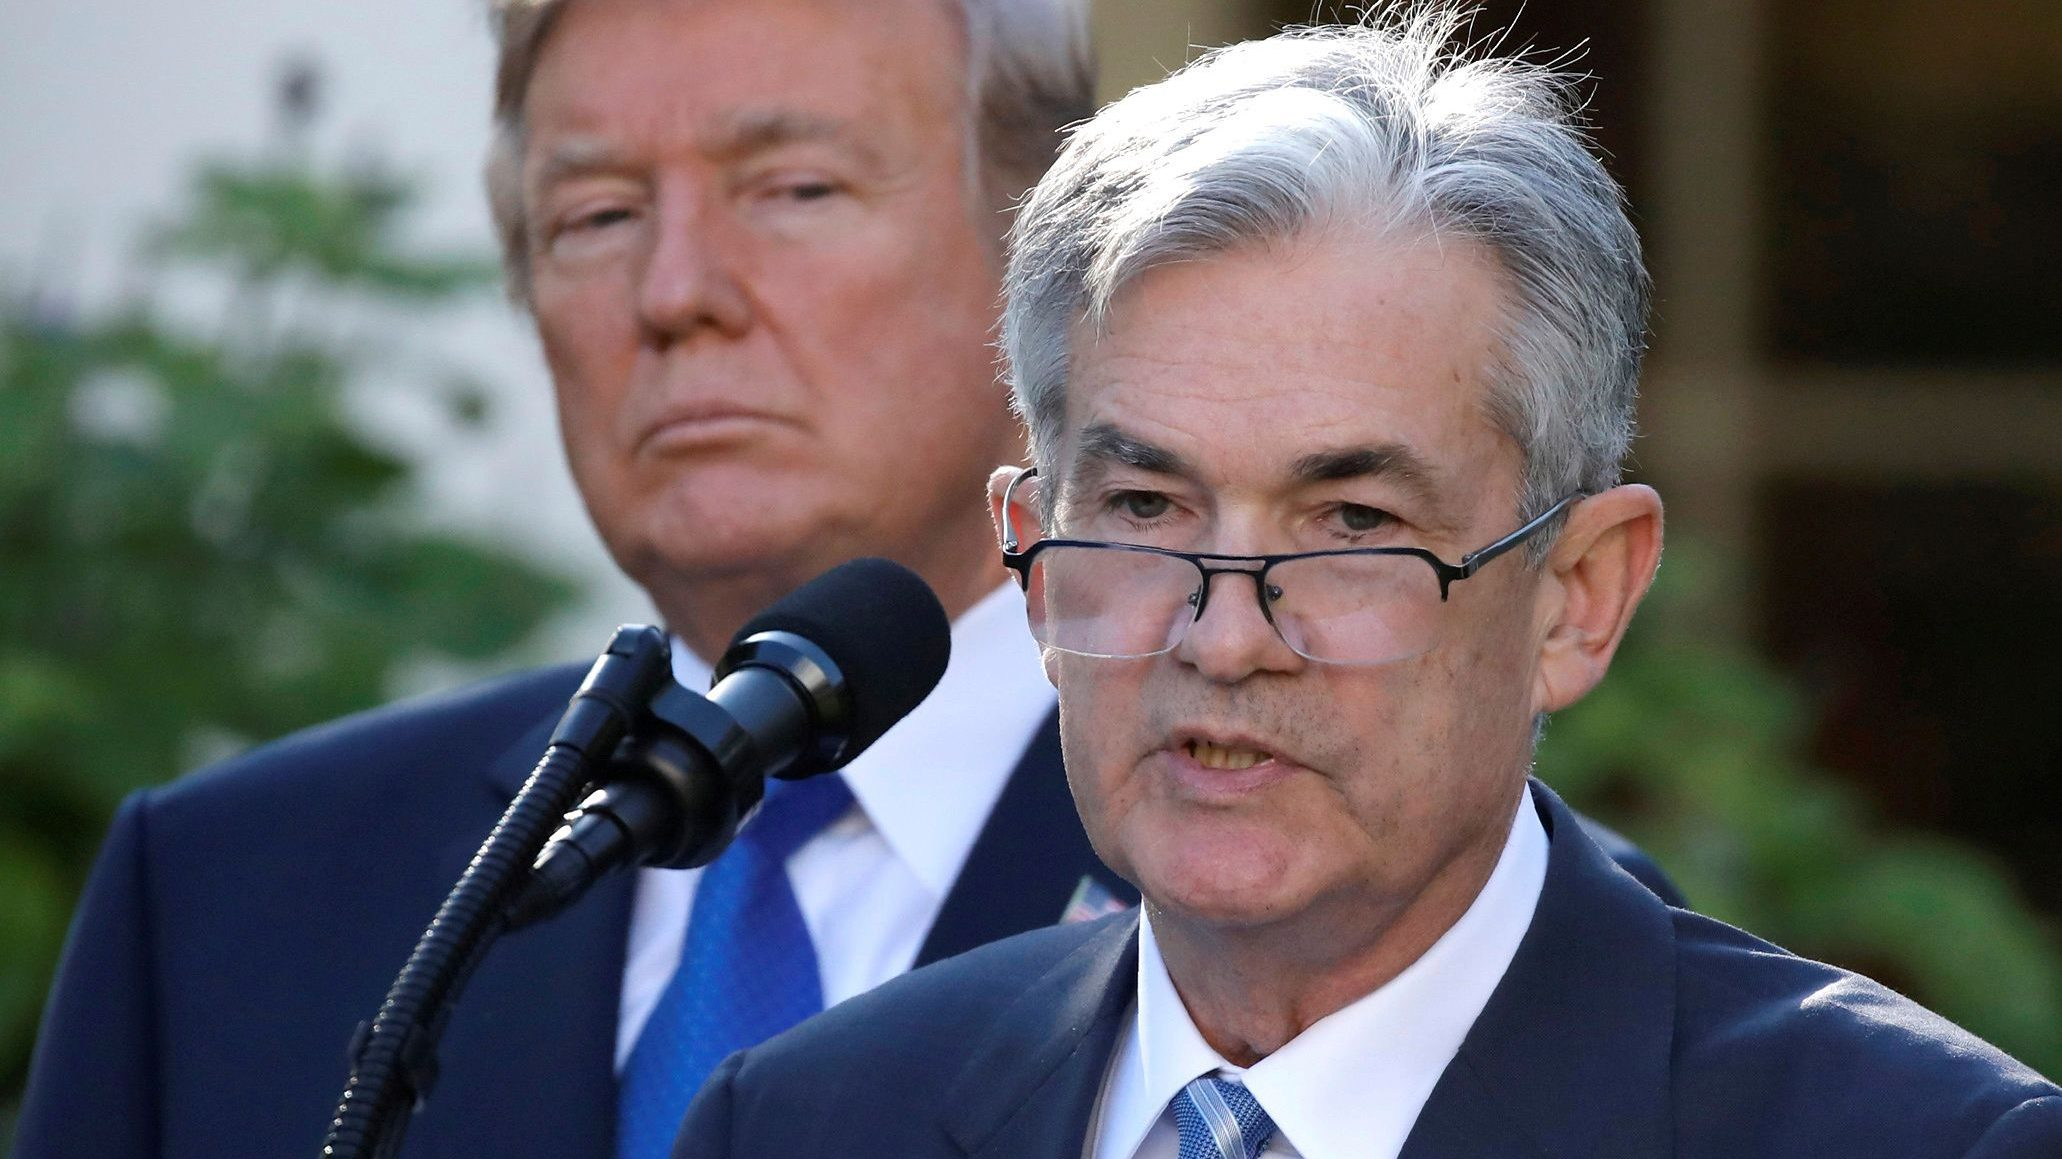 Federal Reserve chair Jay Powell speaks, with Donald Trump in the background